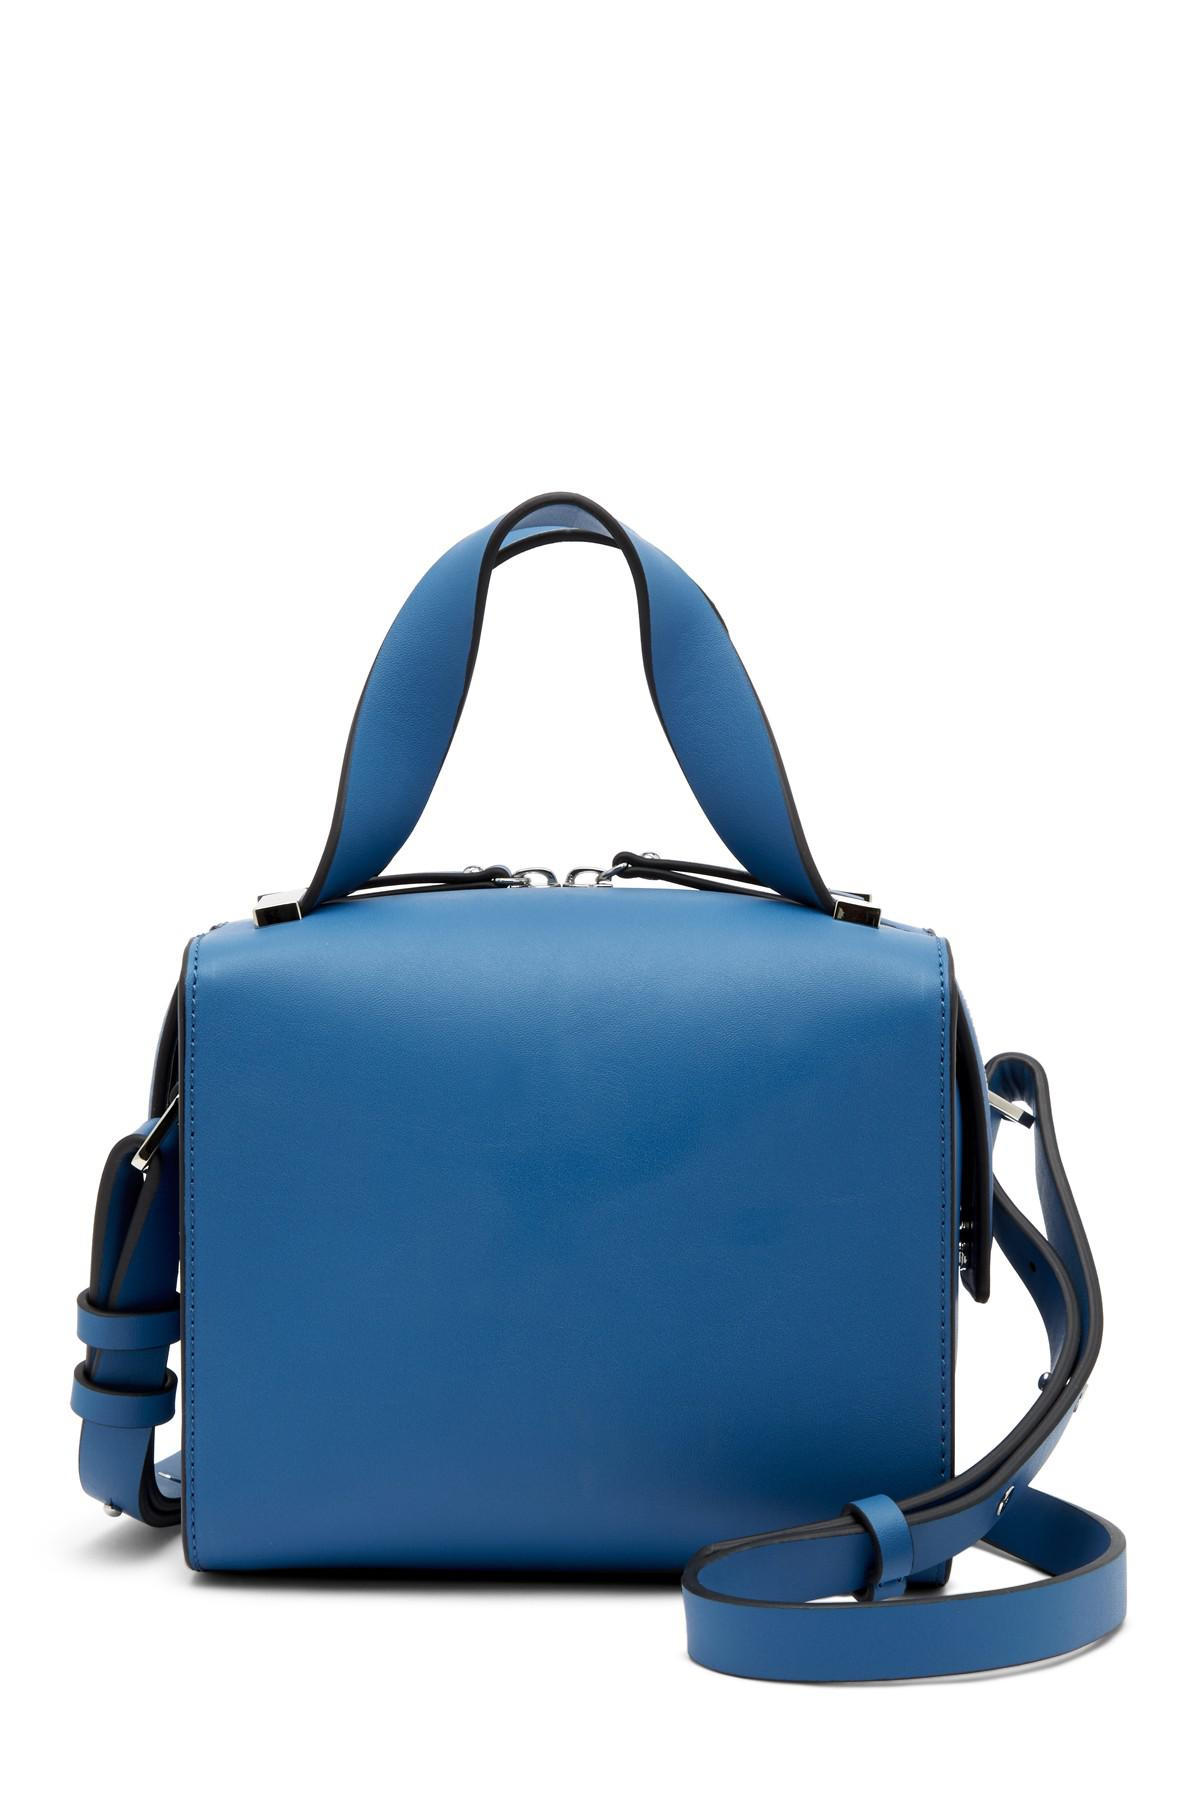 Lyst - French Connection Owen Mini Box Bag in Blue